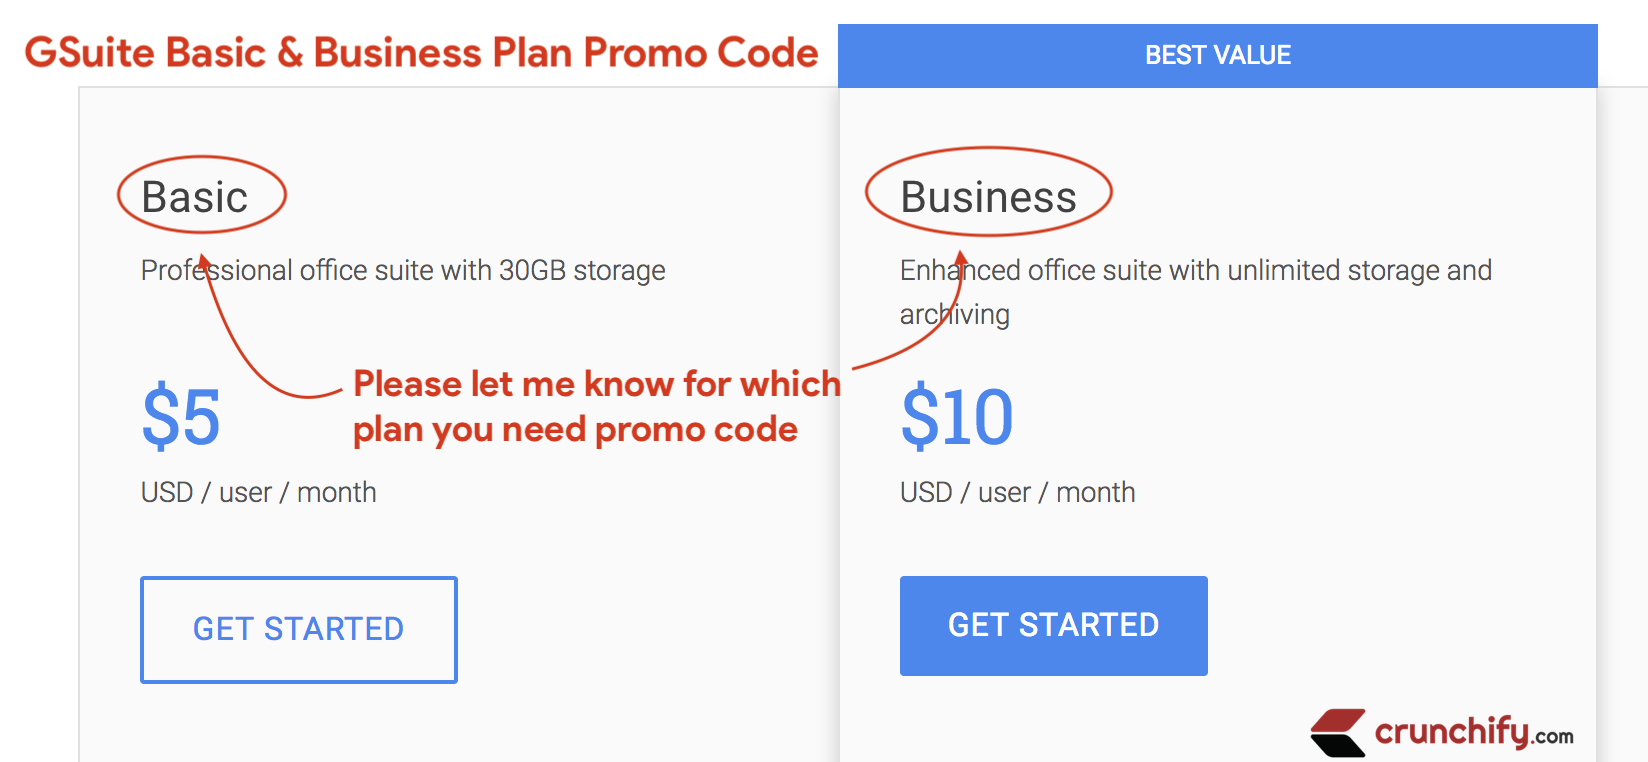 GSuite Basic an Business Plan Promo Code